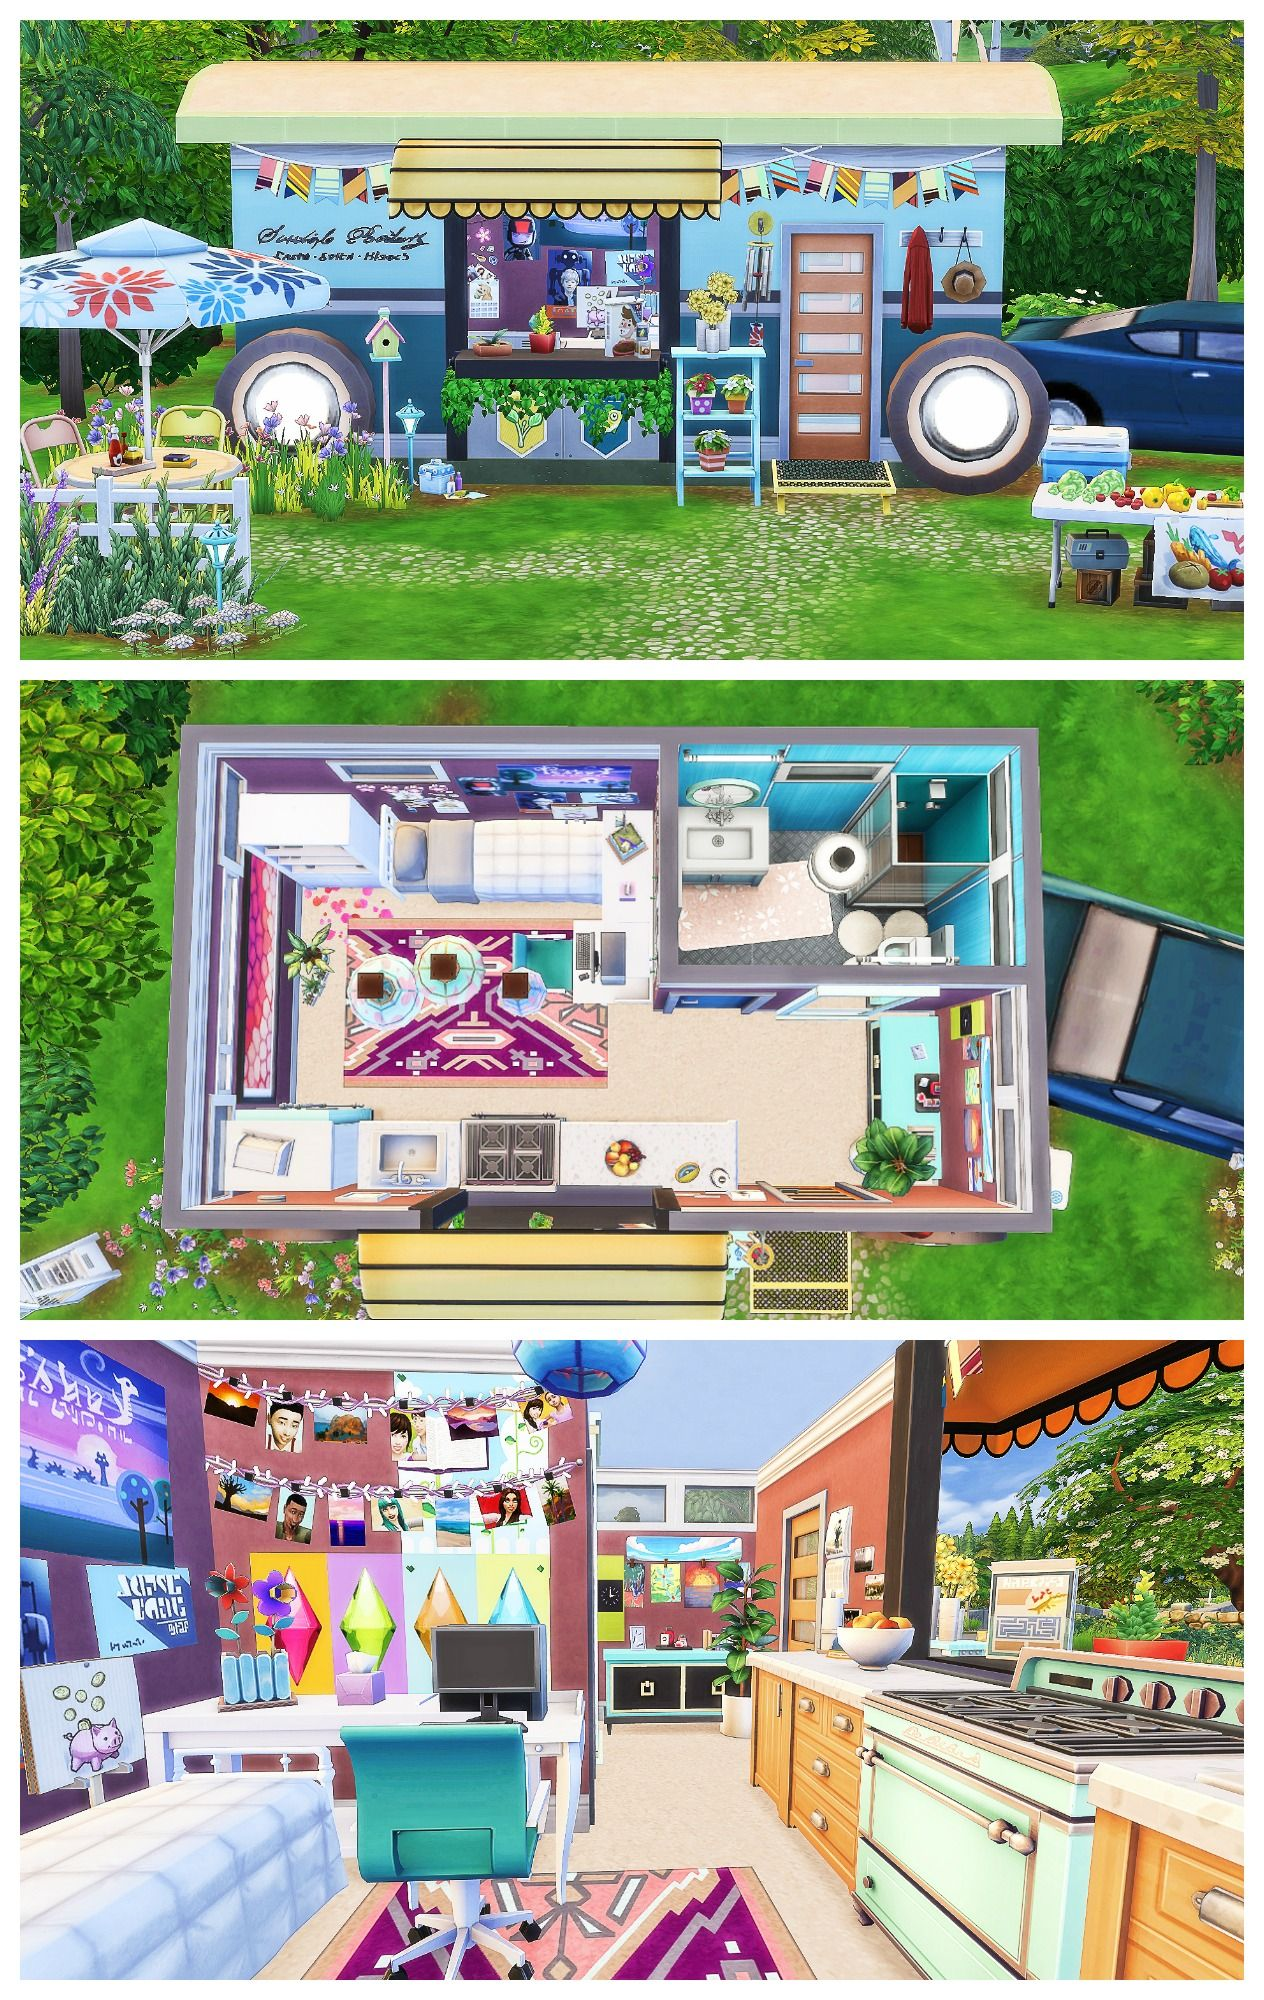 afd1c4da66945650797c8407447e42f9 - 18+ Small House Plans Sims 4  Pictures